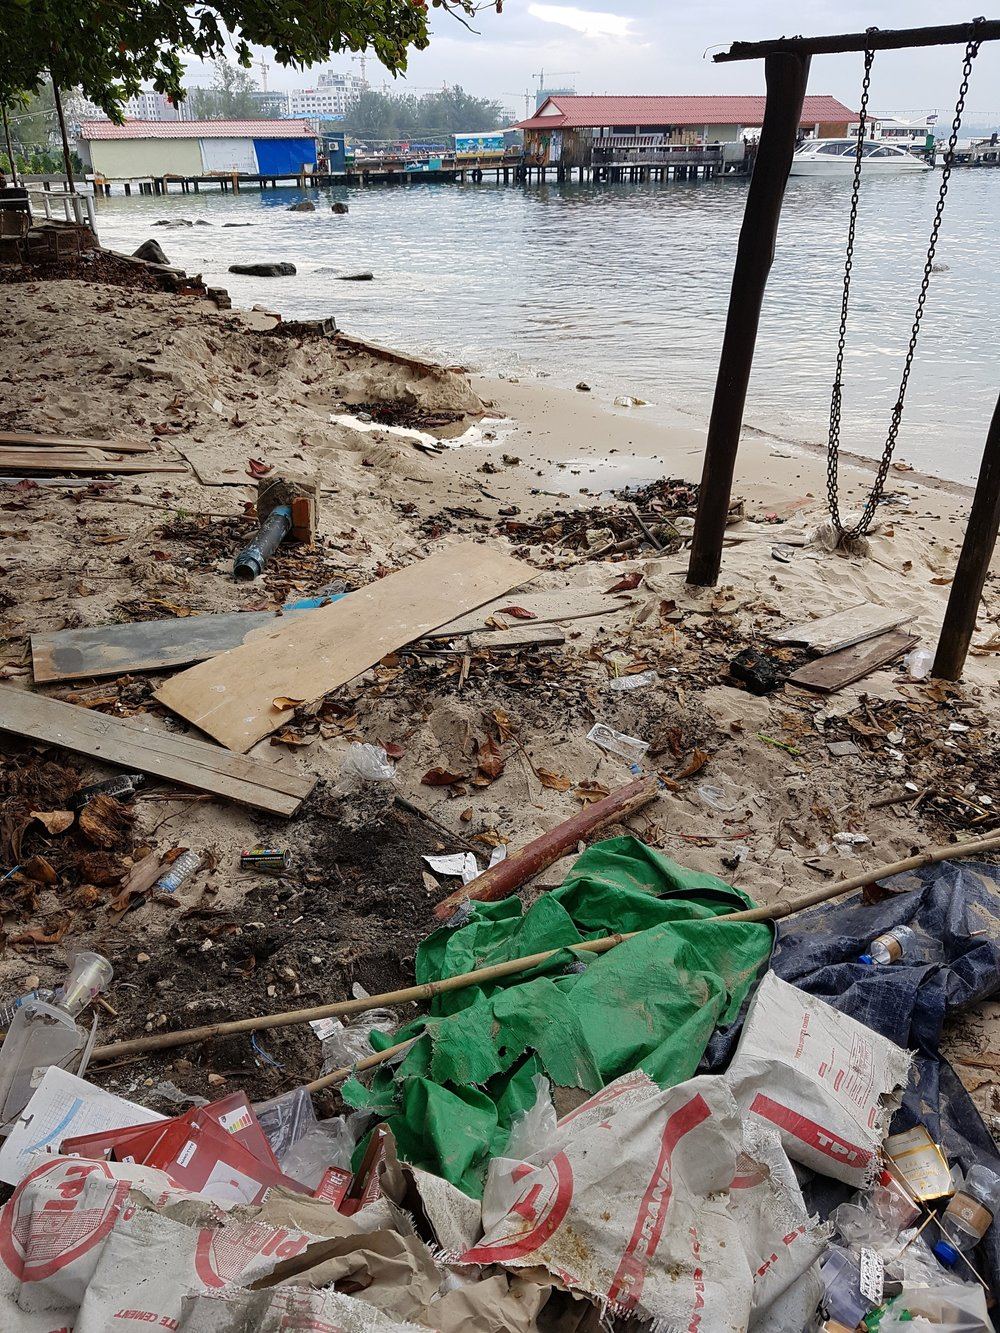 Trash on the beaches with Sihanoukville pier in the background